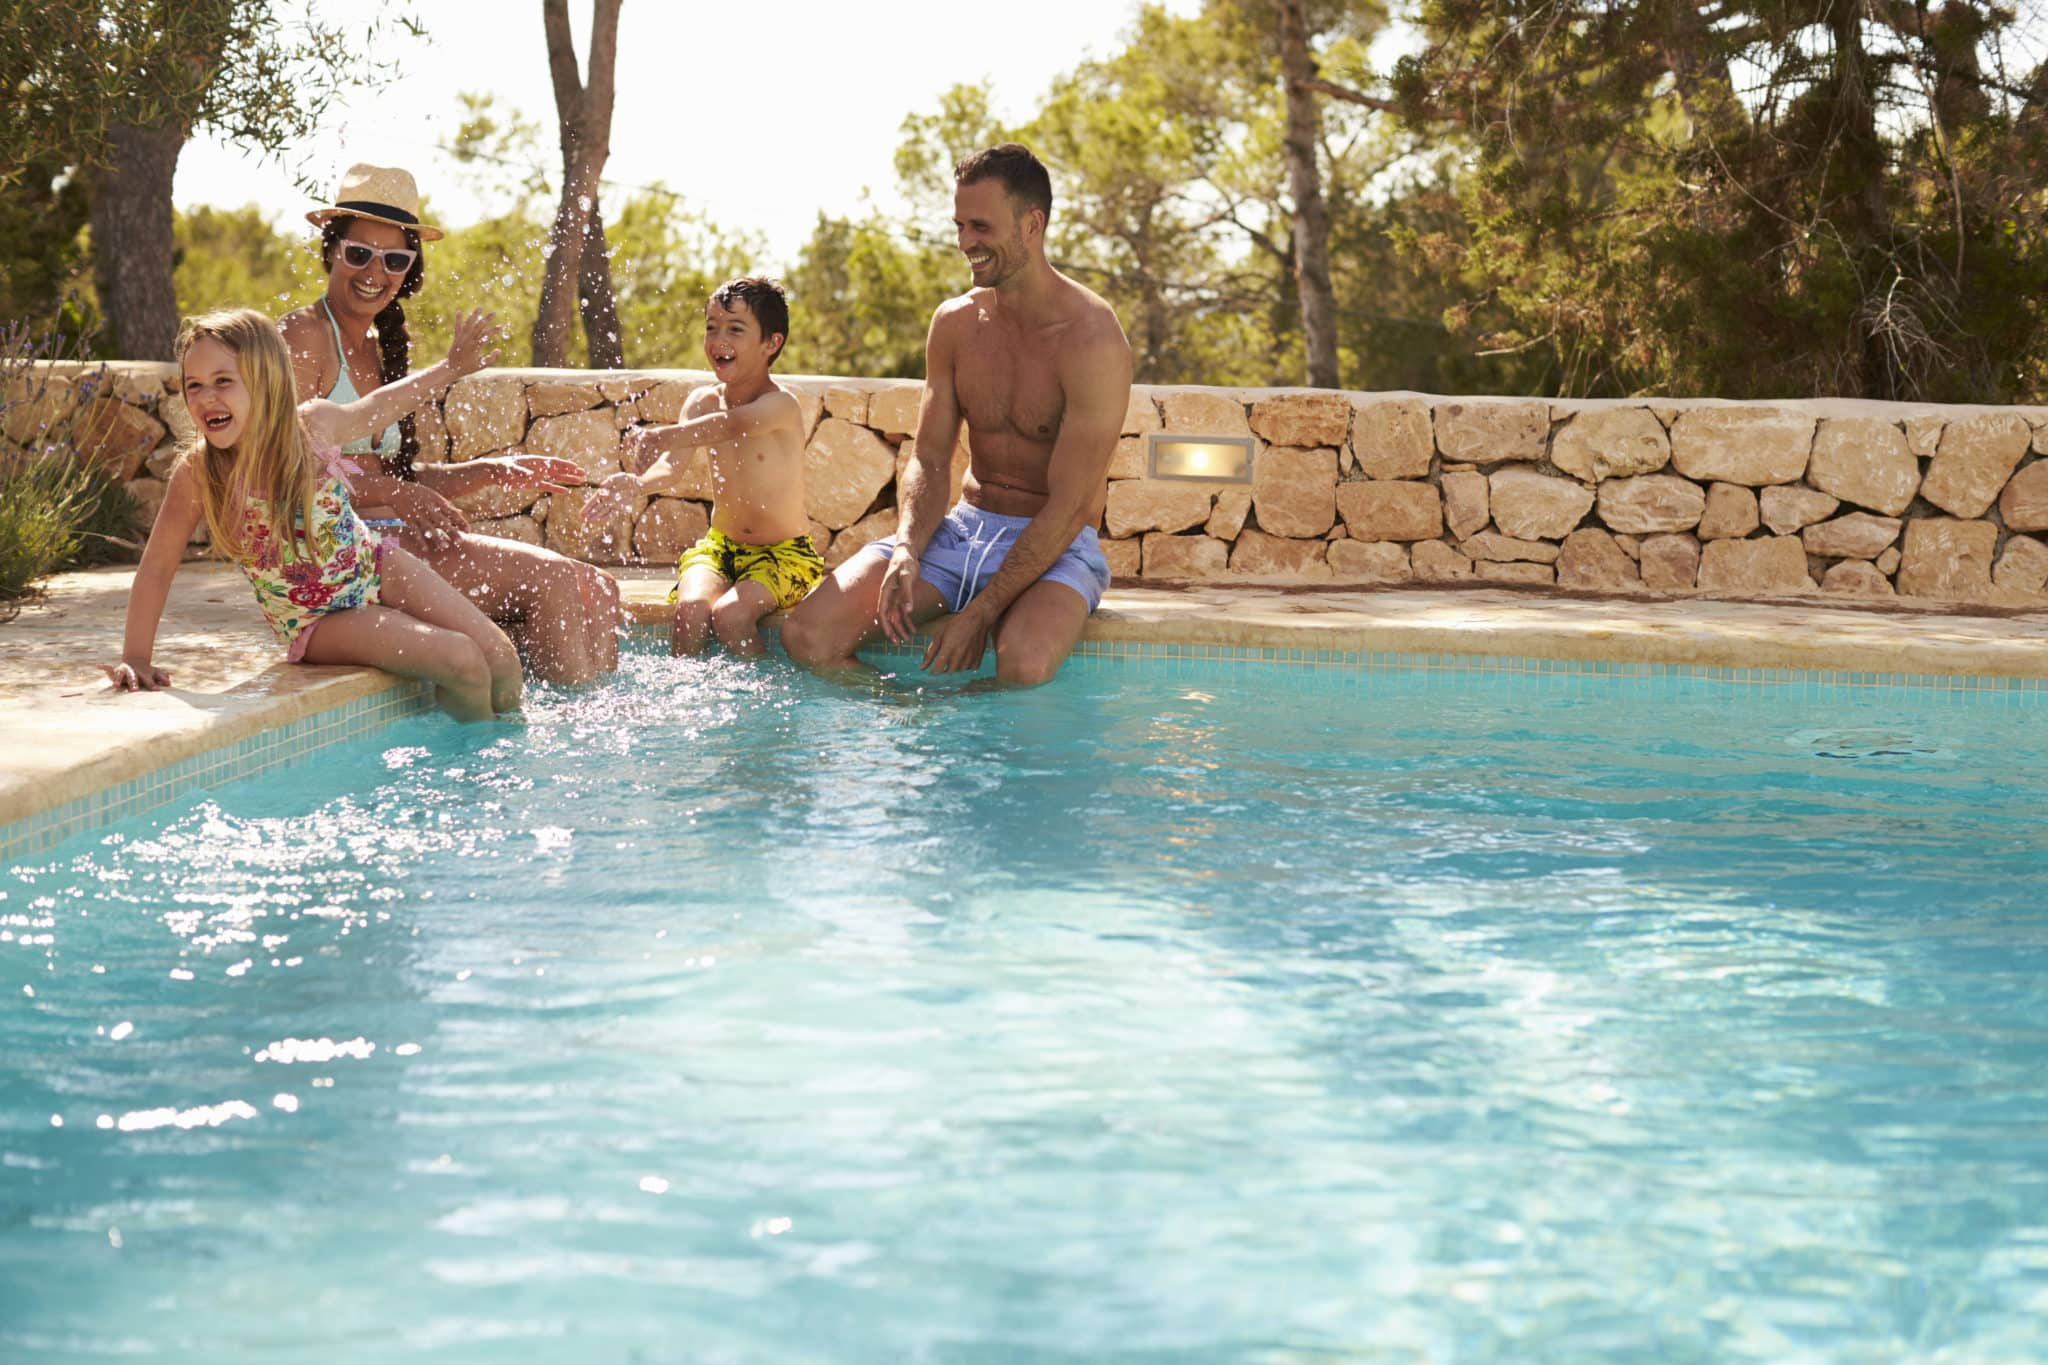 Pool Safety: An Ounce of Prevention